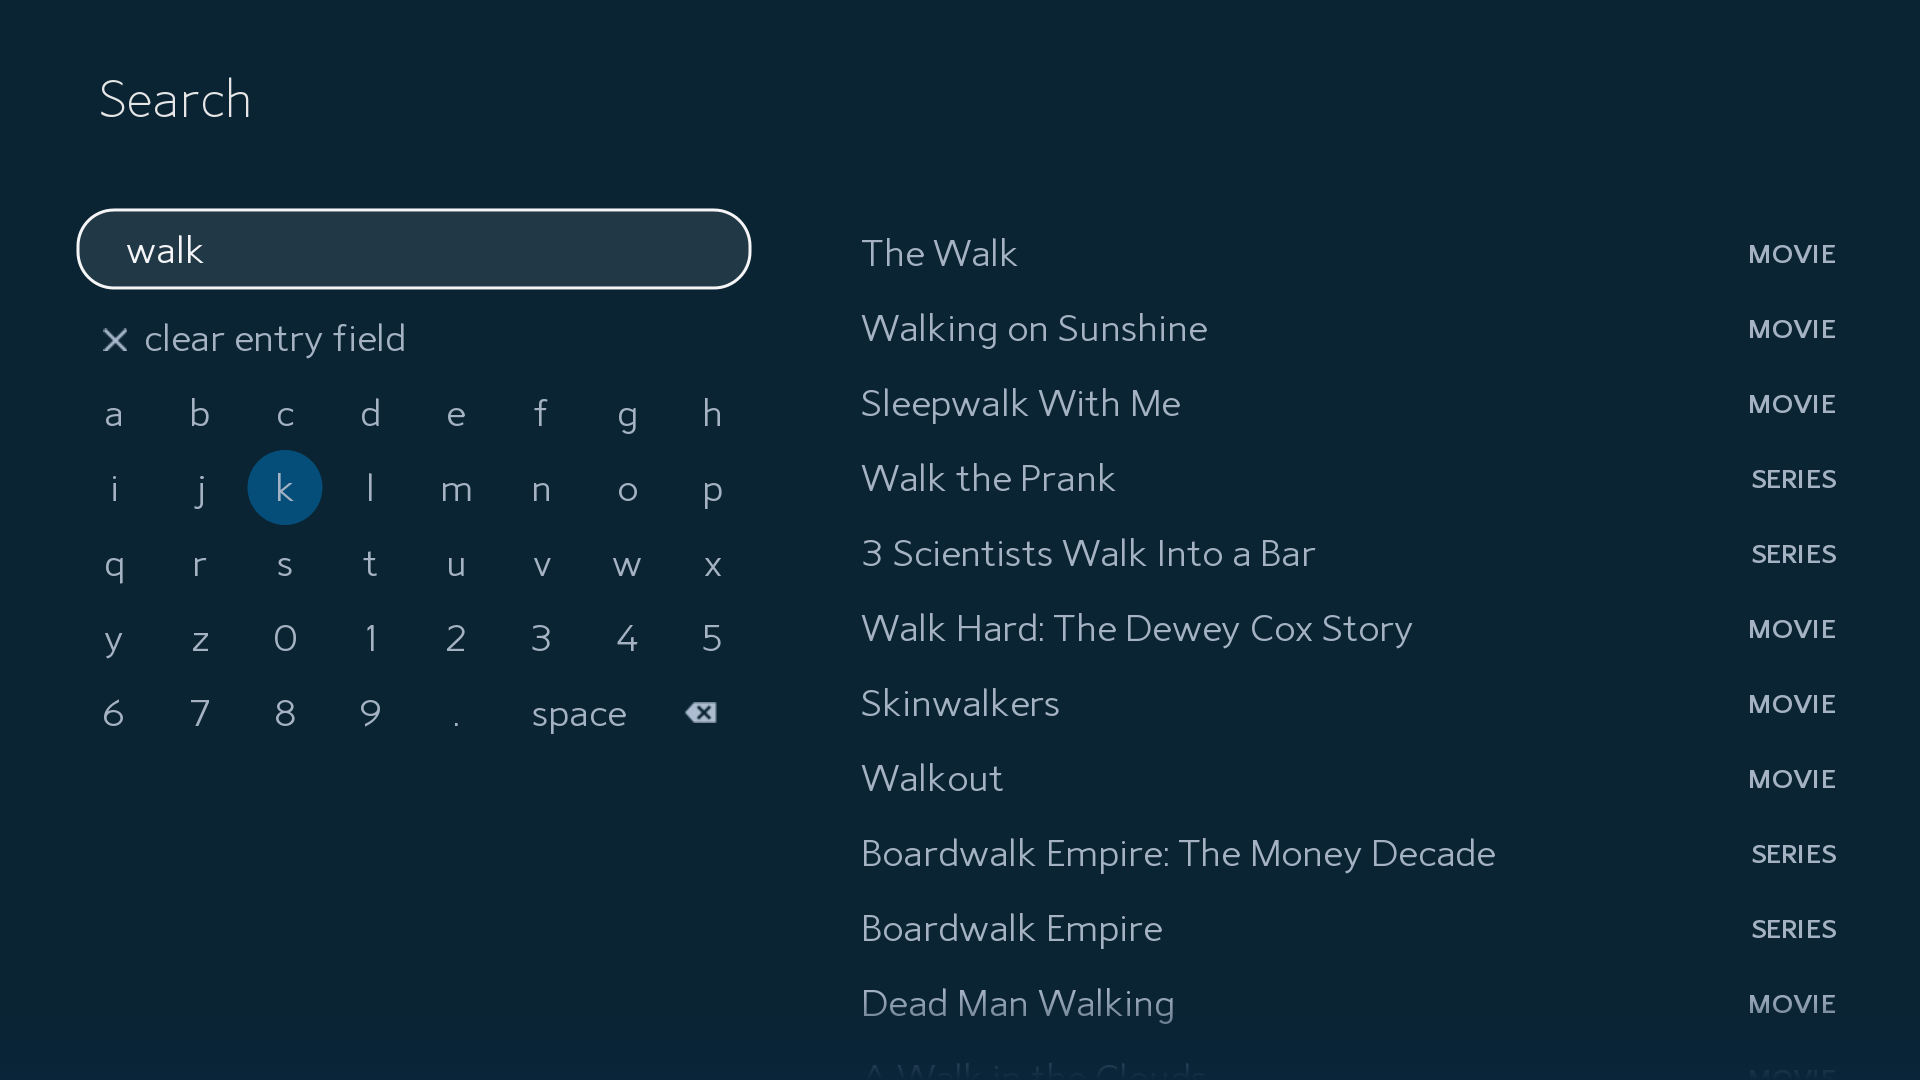 Search feature on the Spectrum TV app for Samsung Smart TVs